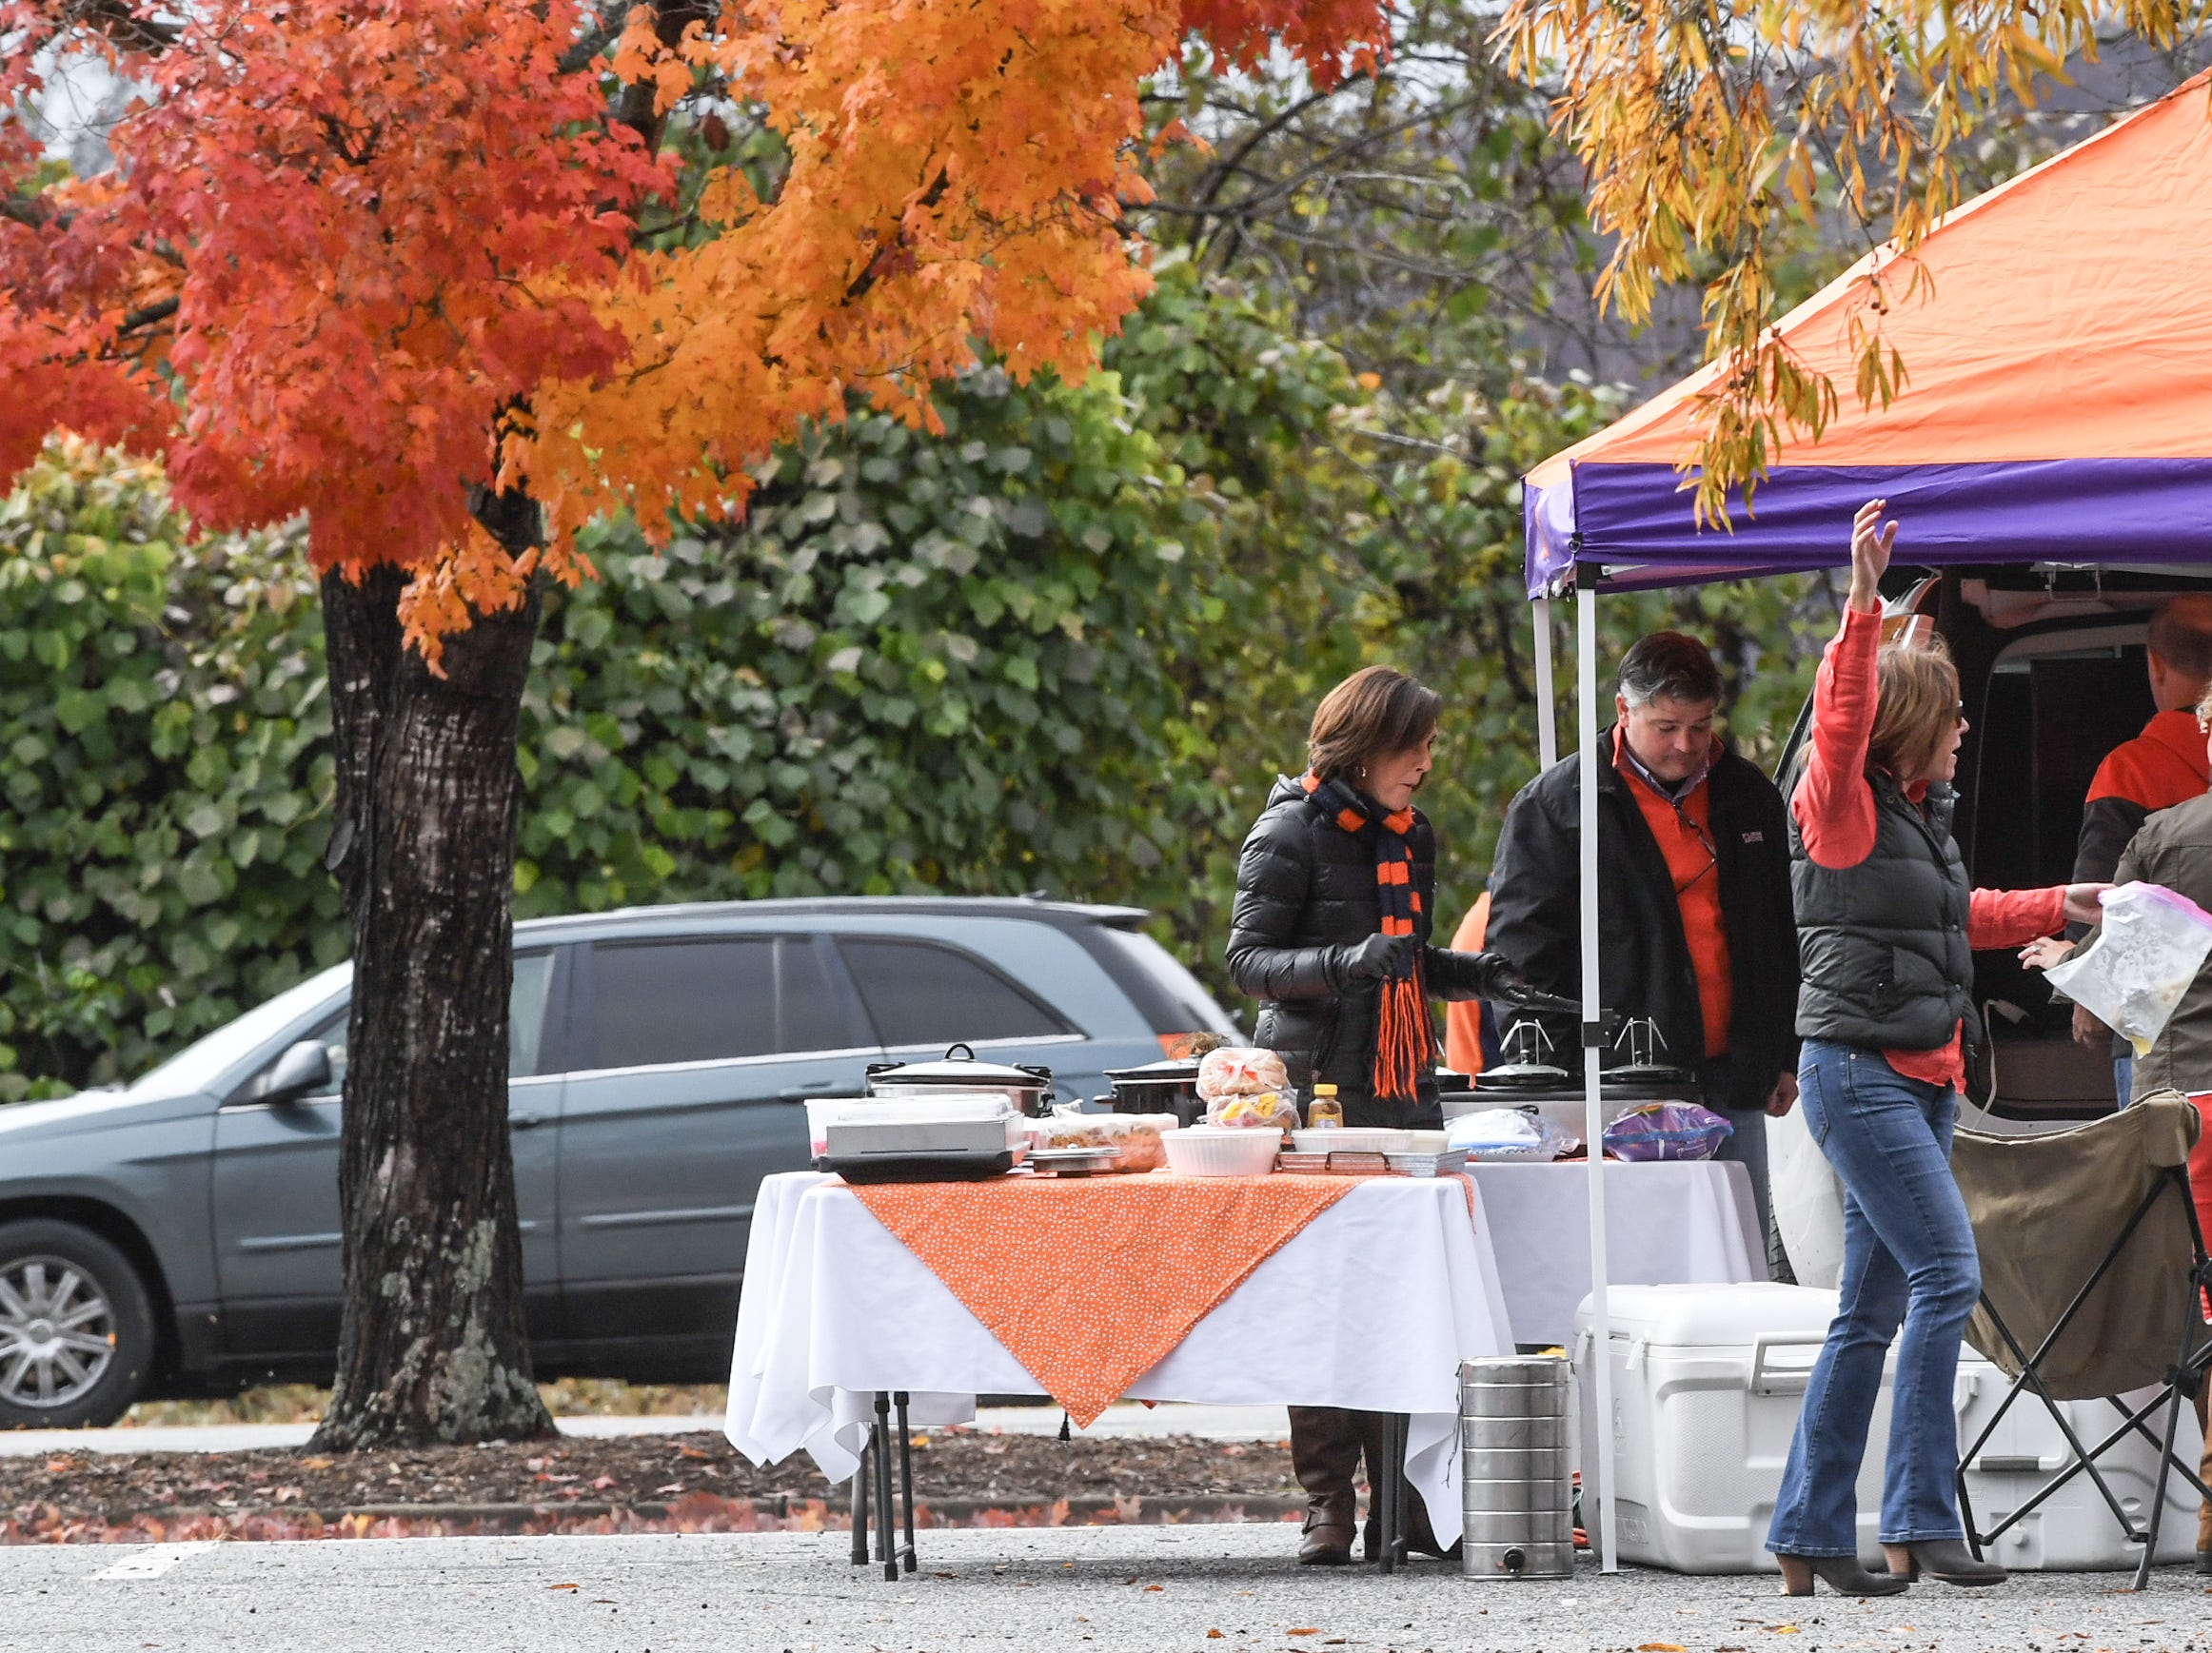 Fans tailgate hours before kickoff outside Memorial Stadium, before the South Carolina at Clemson football game in Clemson on Saturday, November 24, 2018.